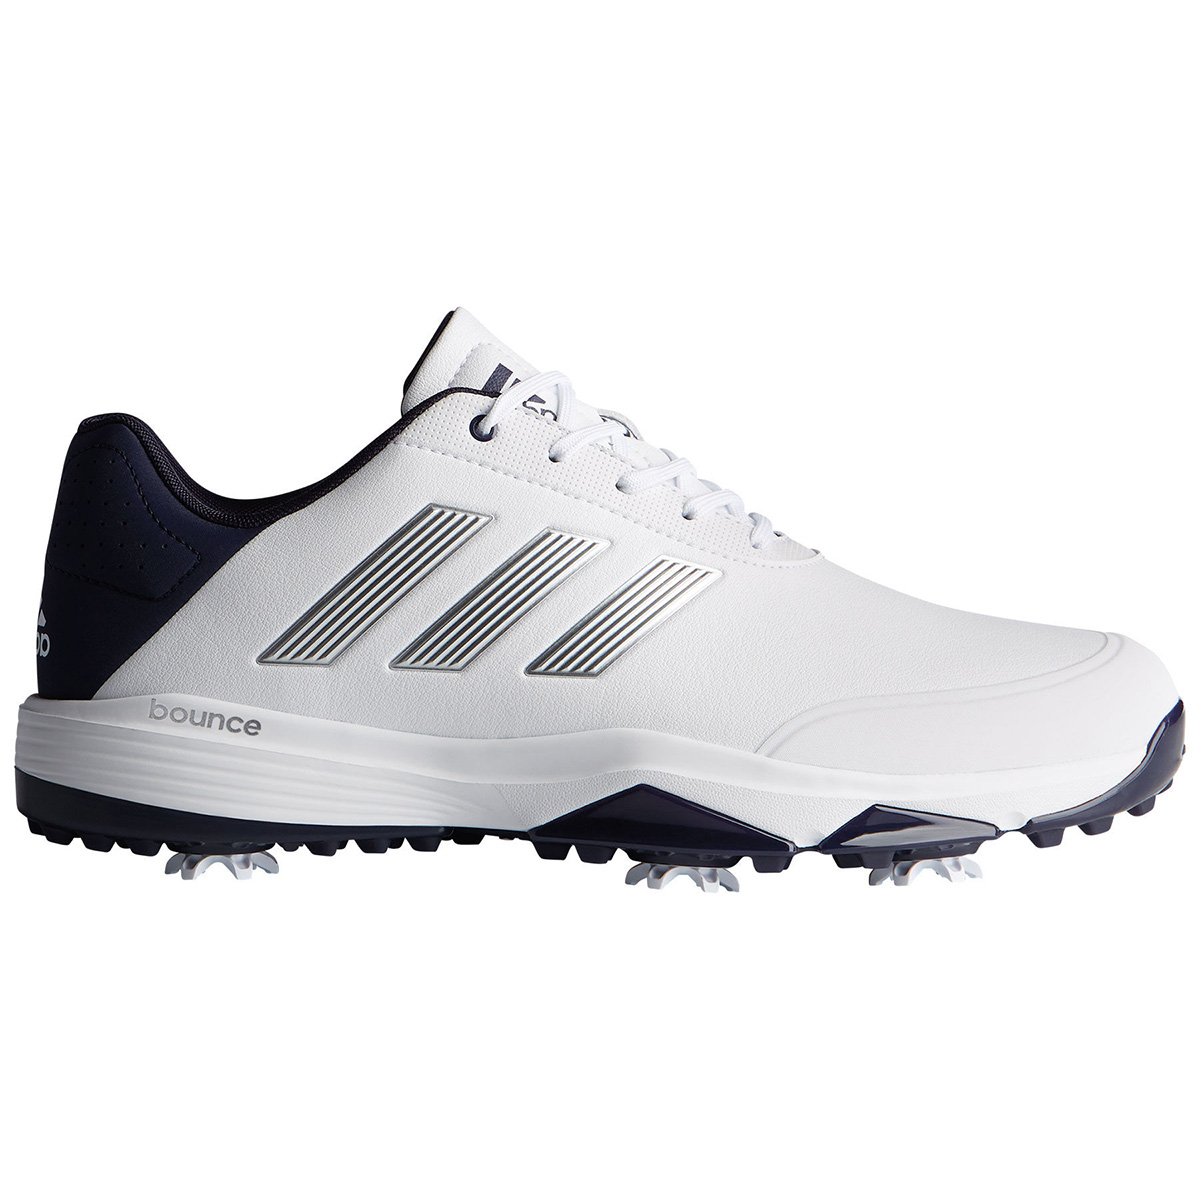 3e9dc03a890 adidas Golf Adipower Bounce Shoes from american golf